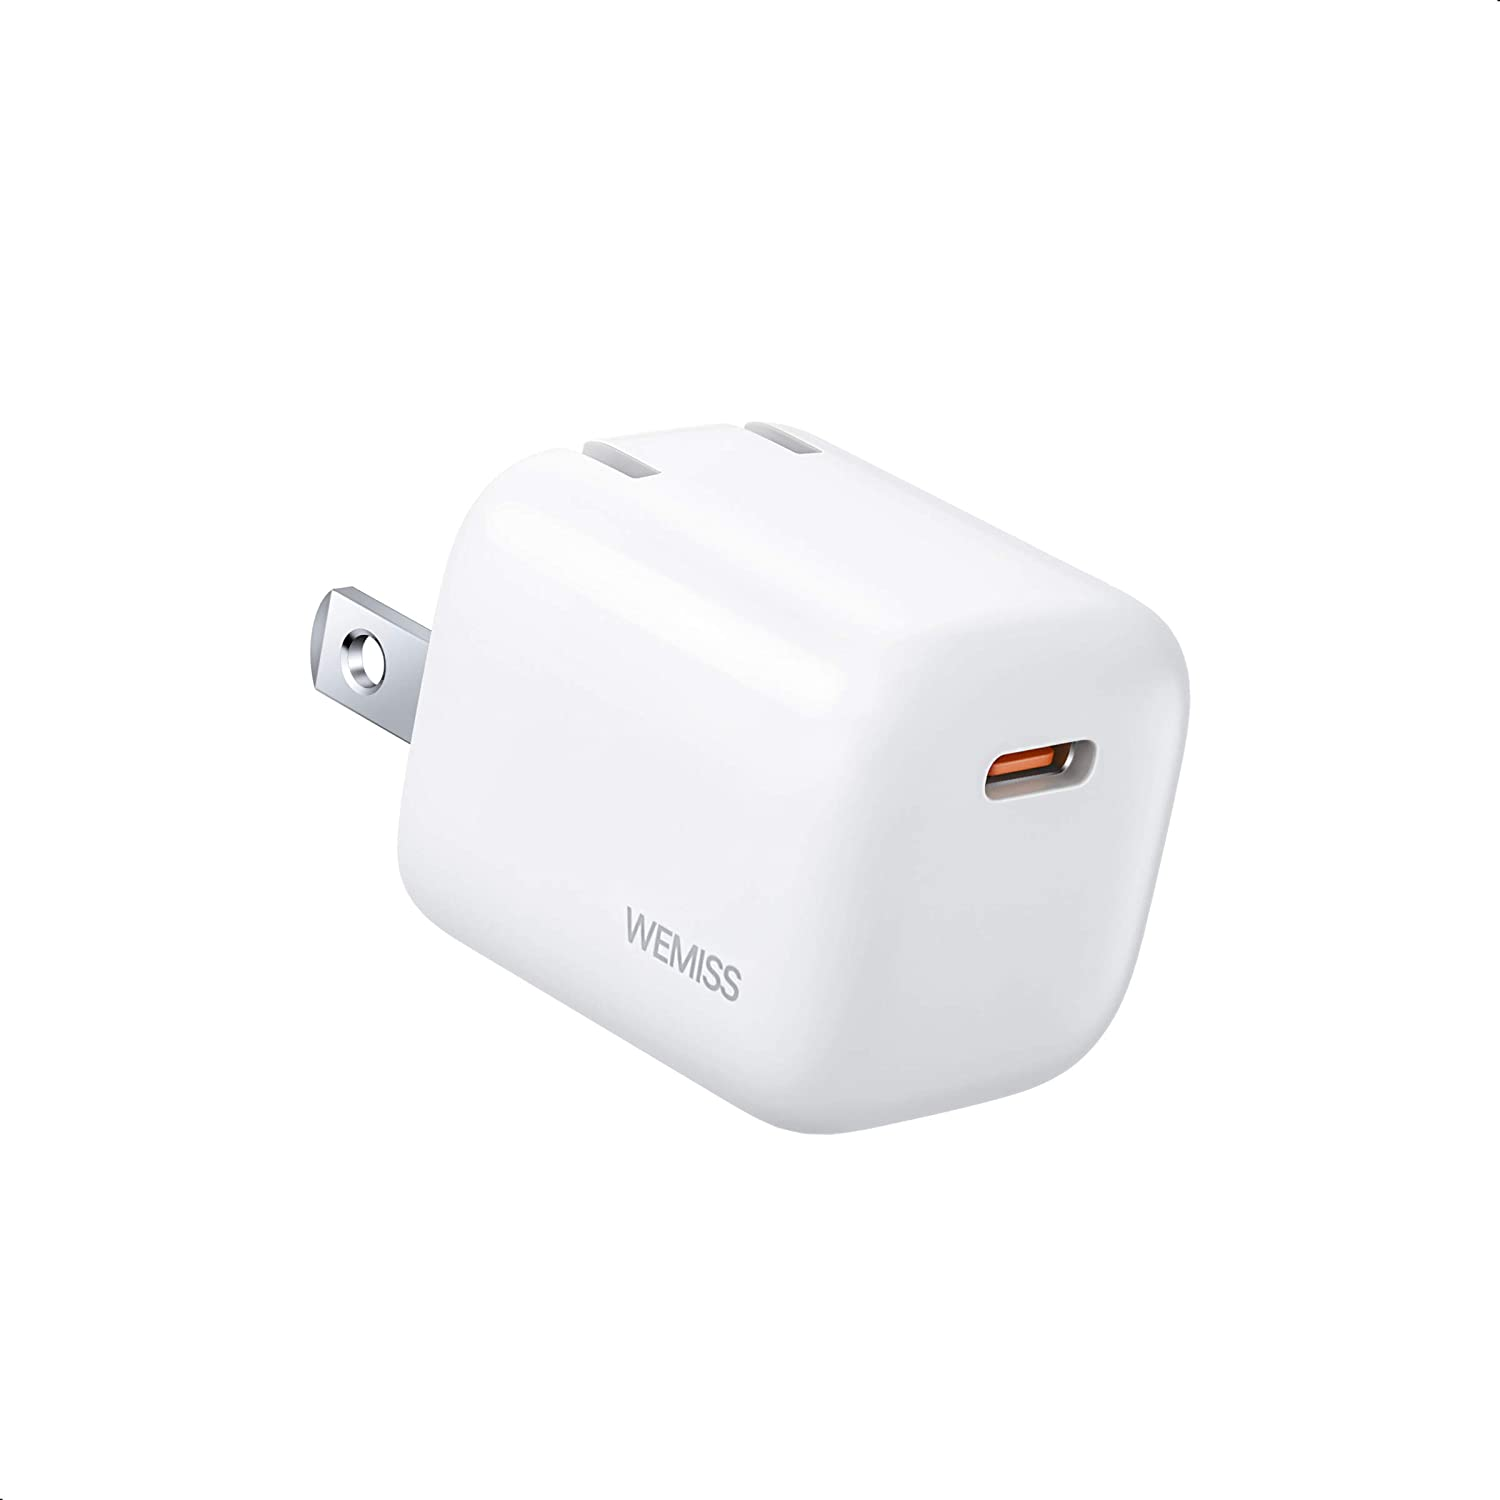 USB C Charger, 20W Mini iPhone 12 Charger, Type C Fast Charger with Foldable Plugs, Ultra-Compact iPhone Charger, USB C Wall Charger for iPhone 12/12 Pro/12 Pro Max, iPad MagSafe (1 Pack)